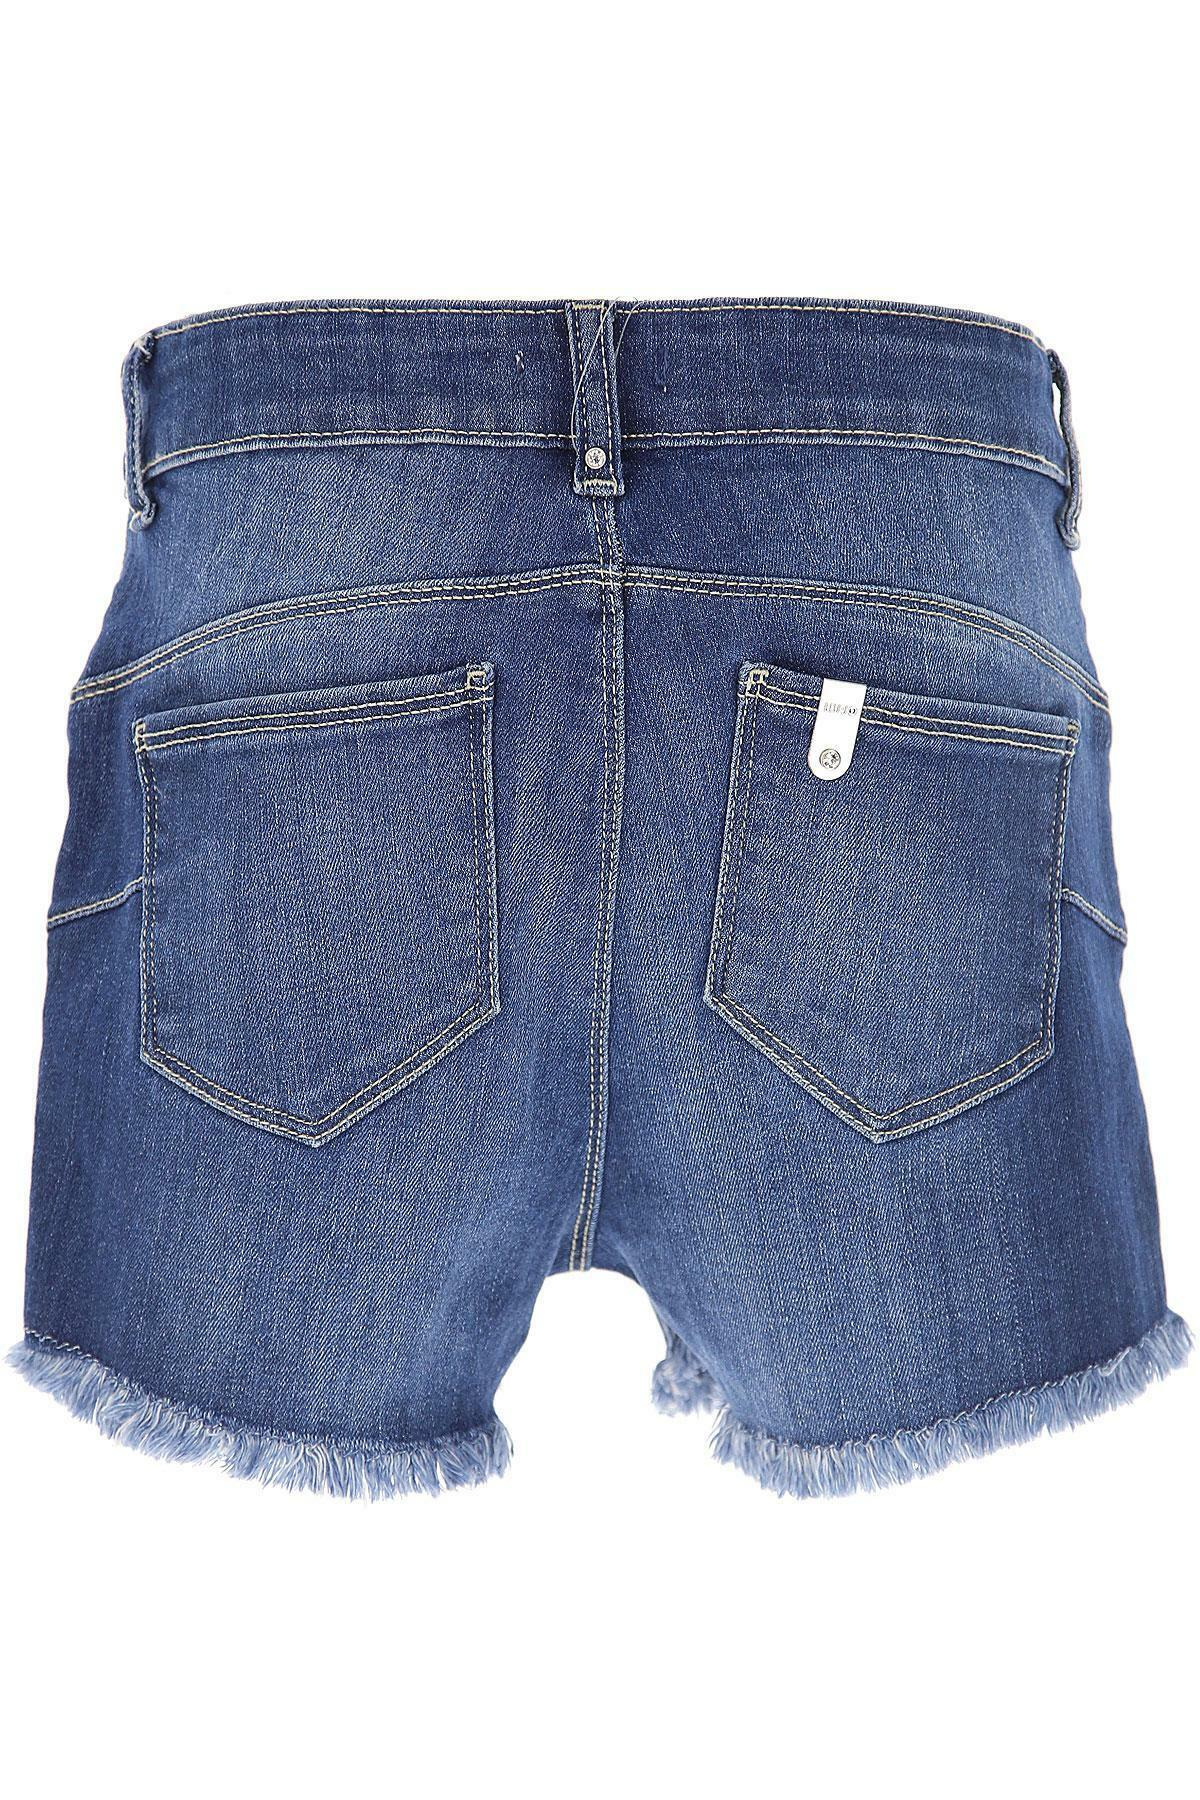 liu jo liu jo short ragazza denim  ga0005d3246